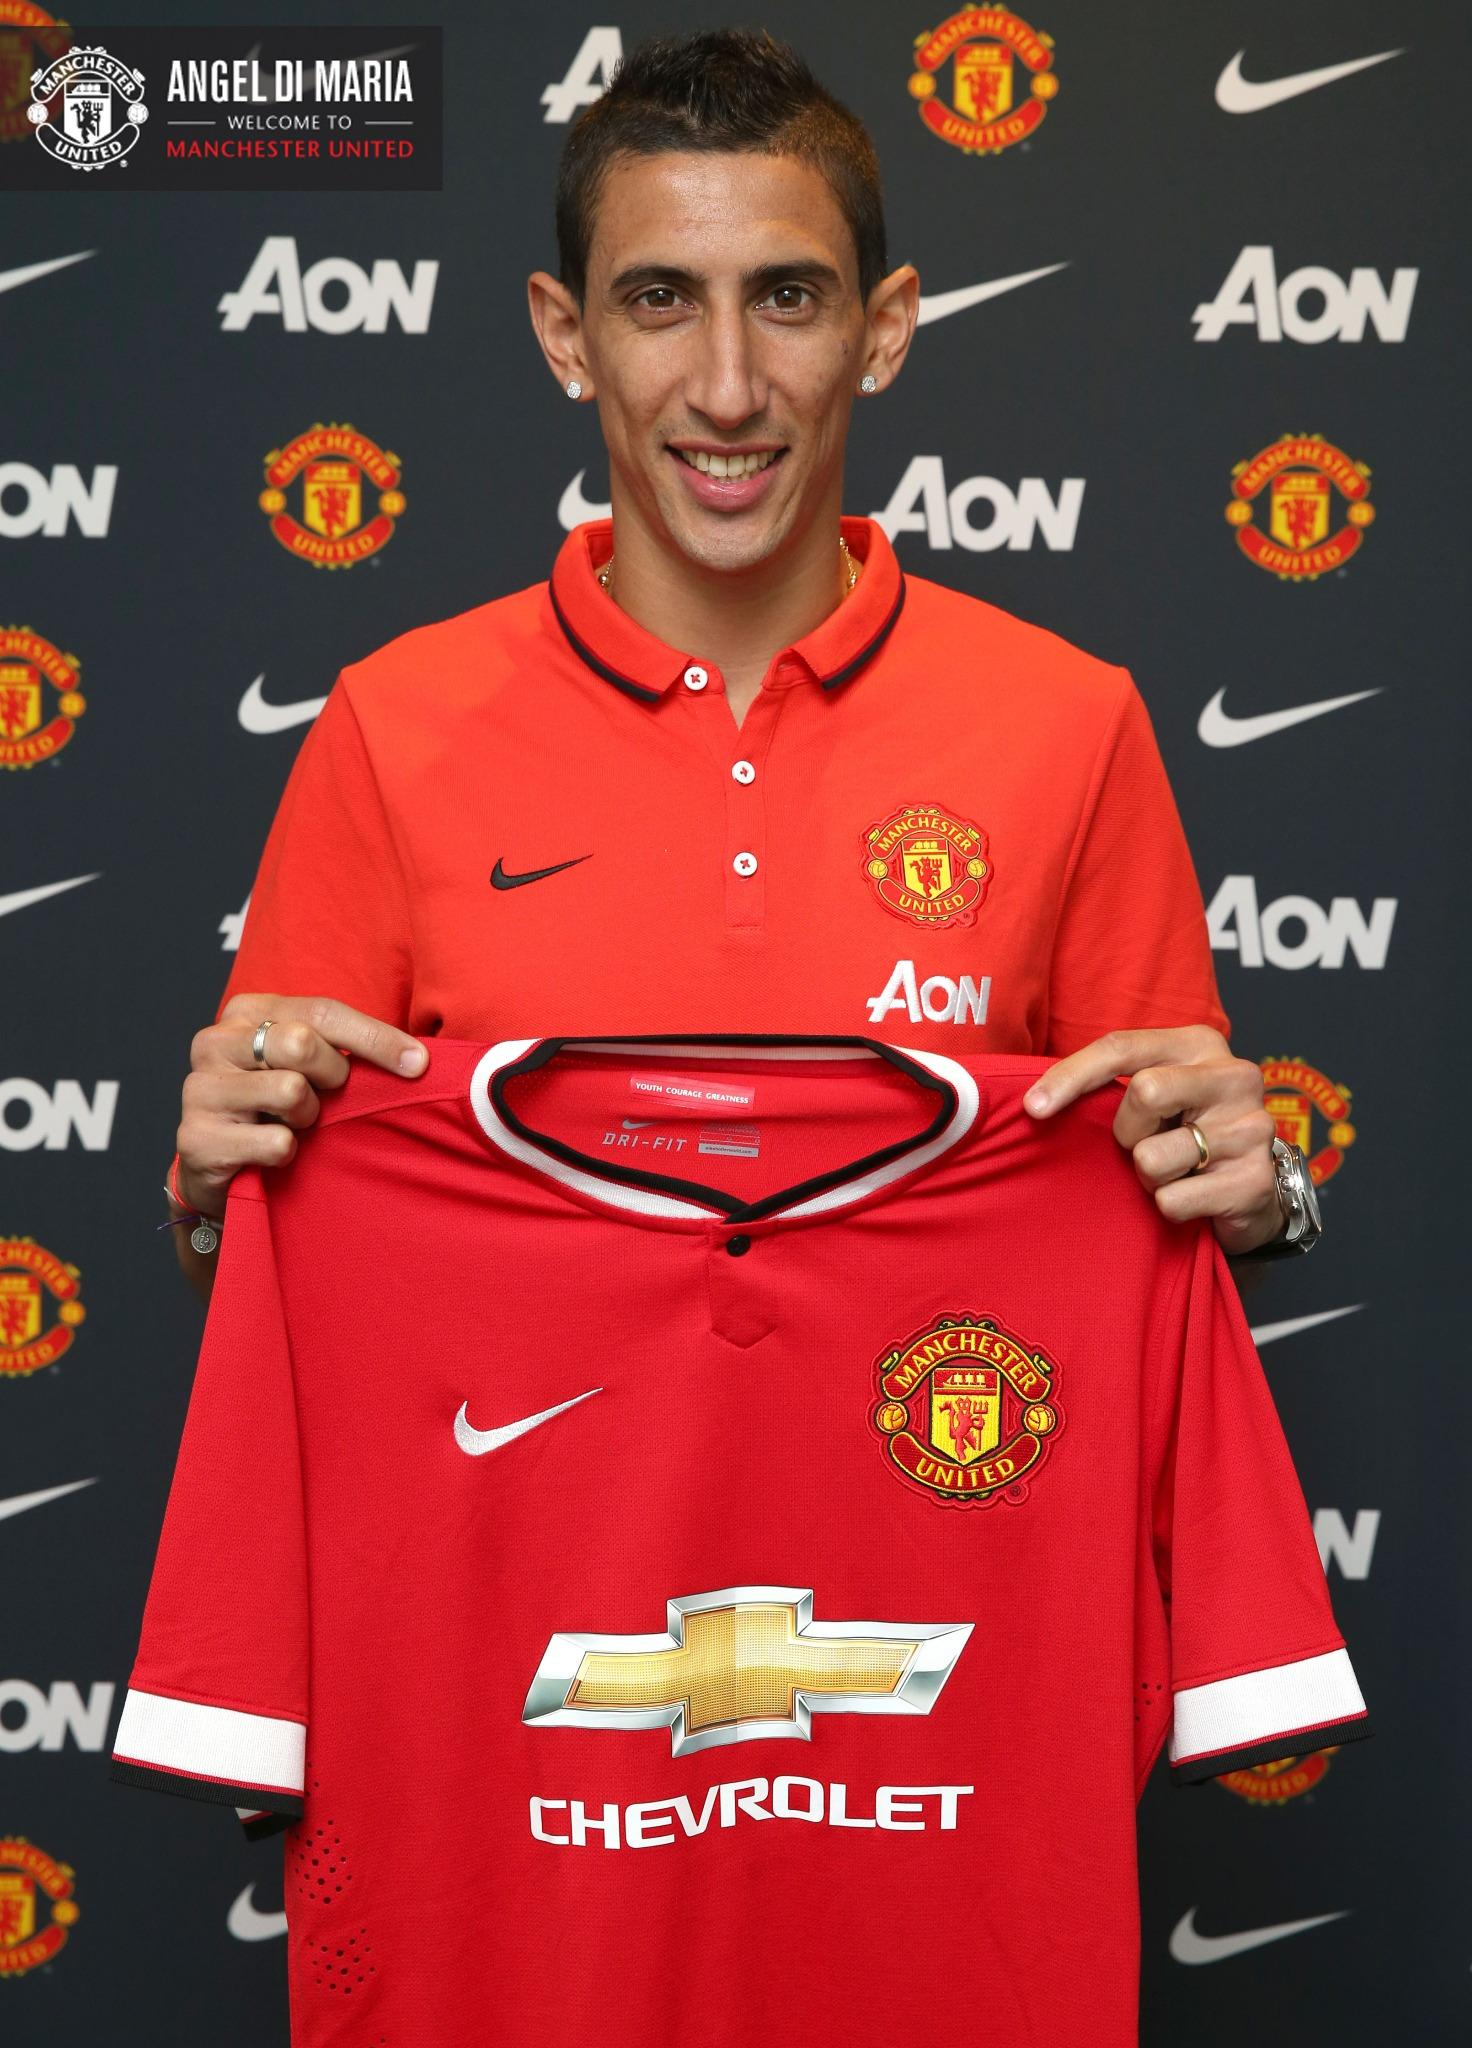 BREAKING: Angel Di Maria has completed his move to #mufc for a British record fee of £59.7m. http://t.co/C2cKU4wZU7